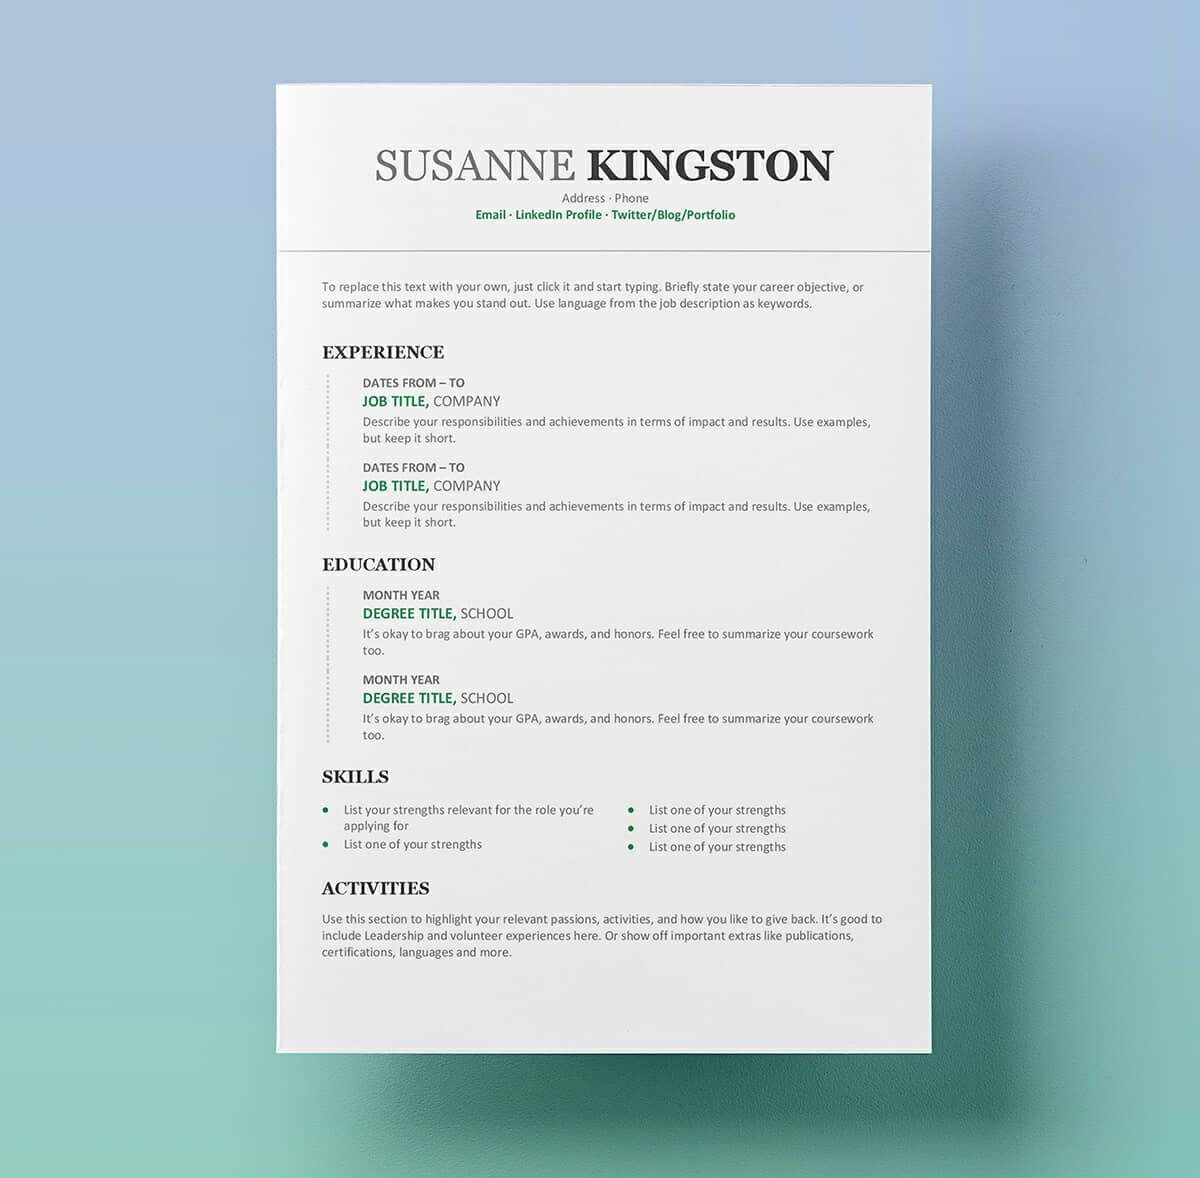 resume templates for microsoft word free attractive city worker welder examples good Resume Free Attractive Resume Templates